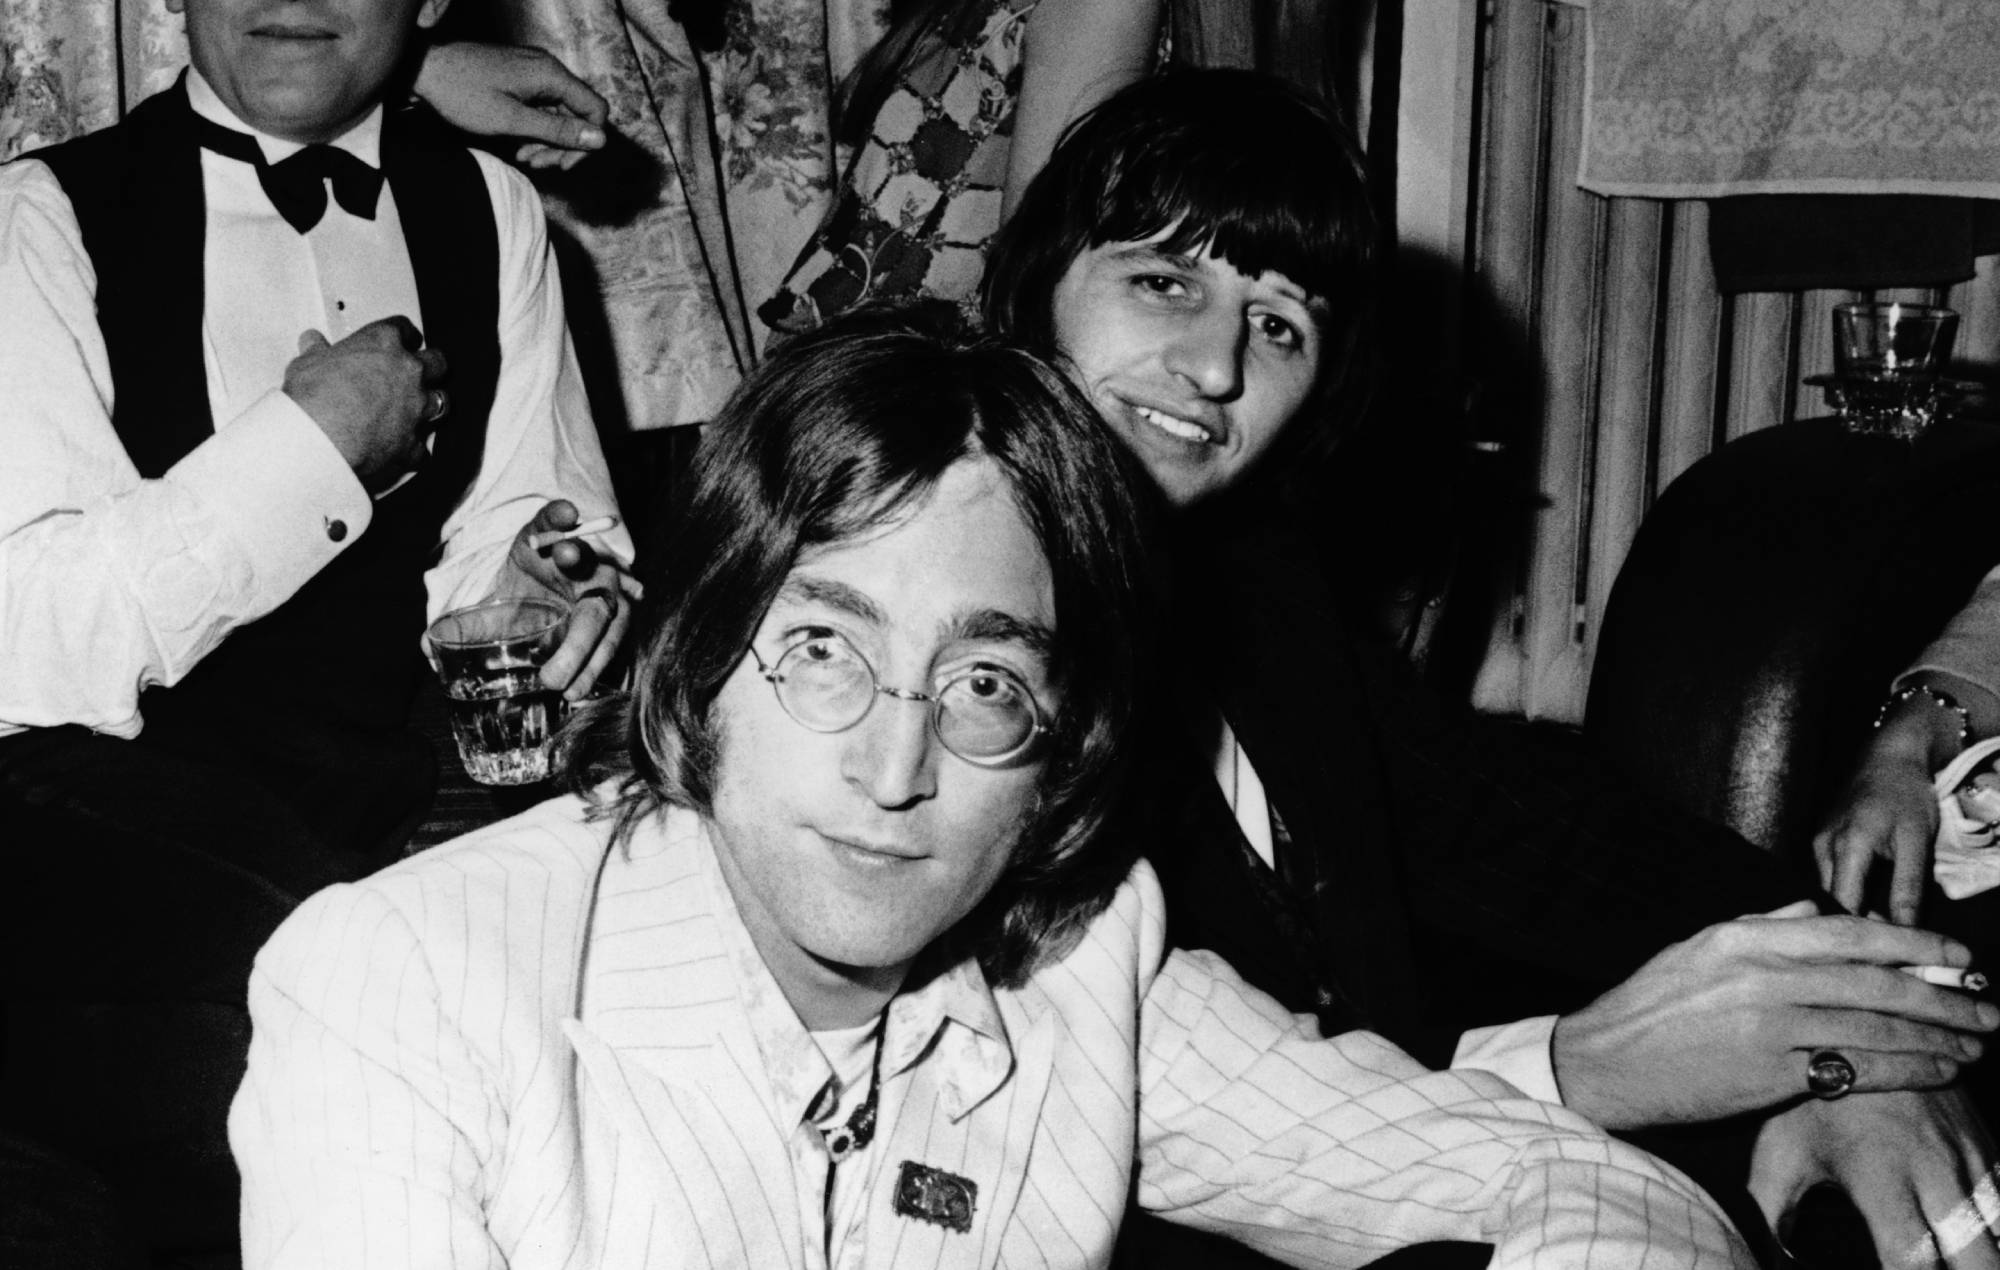 """Ringo Starr remembers John Lennon as """"one of the greats"""" at Plastic Ono Band listening party"""